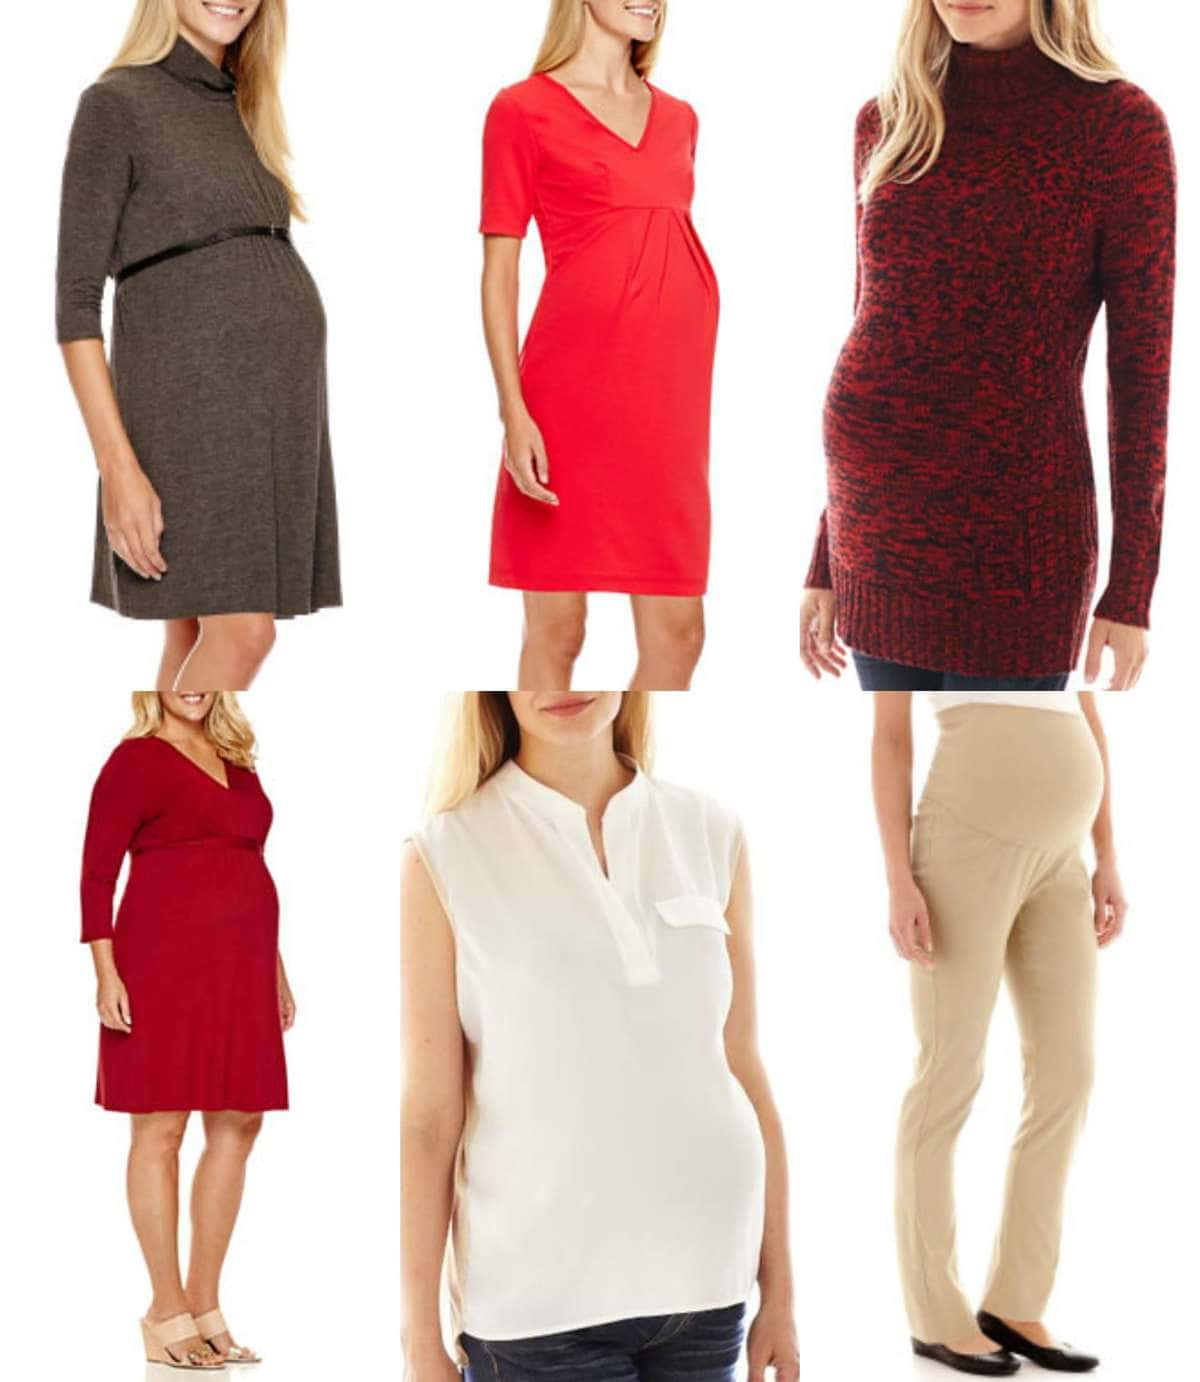 maternity work clothes in plus size where to buy - wardrobe oxygen| Plus Size Maternity Work Clothes featured by popular DC curvy fashion blogger, Wardrobe Oxygen